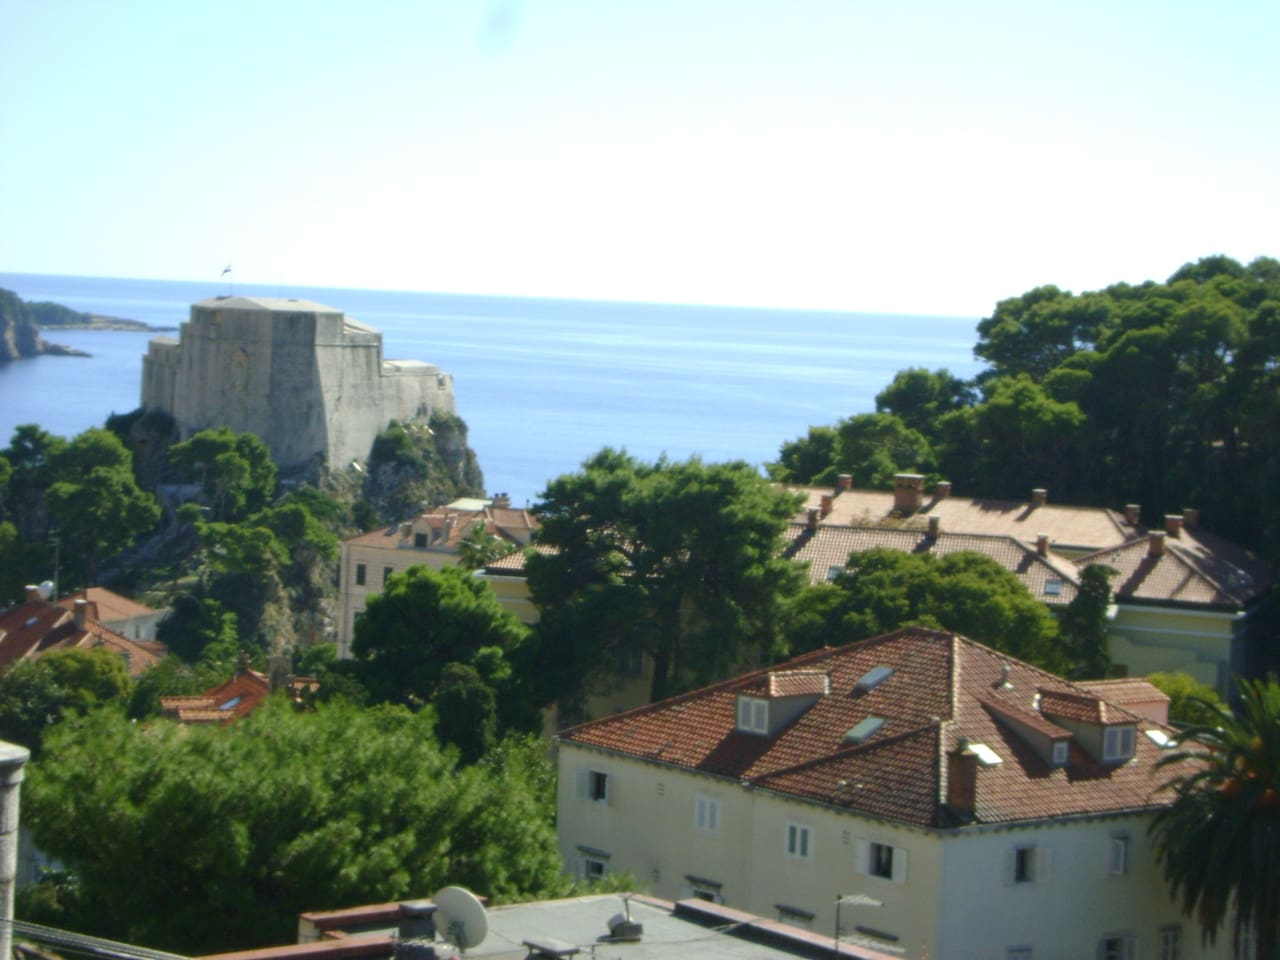 View from the window - Lovrijenac Fortress and Adriatic sea